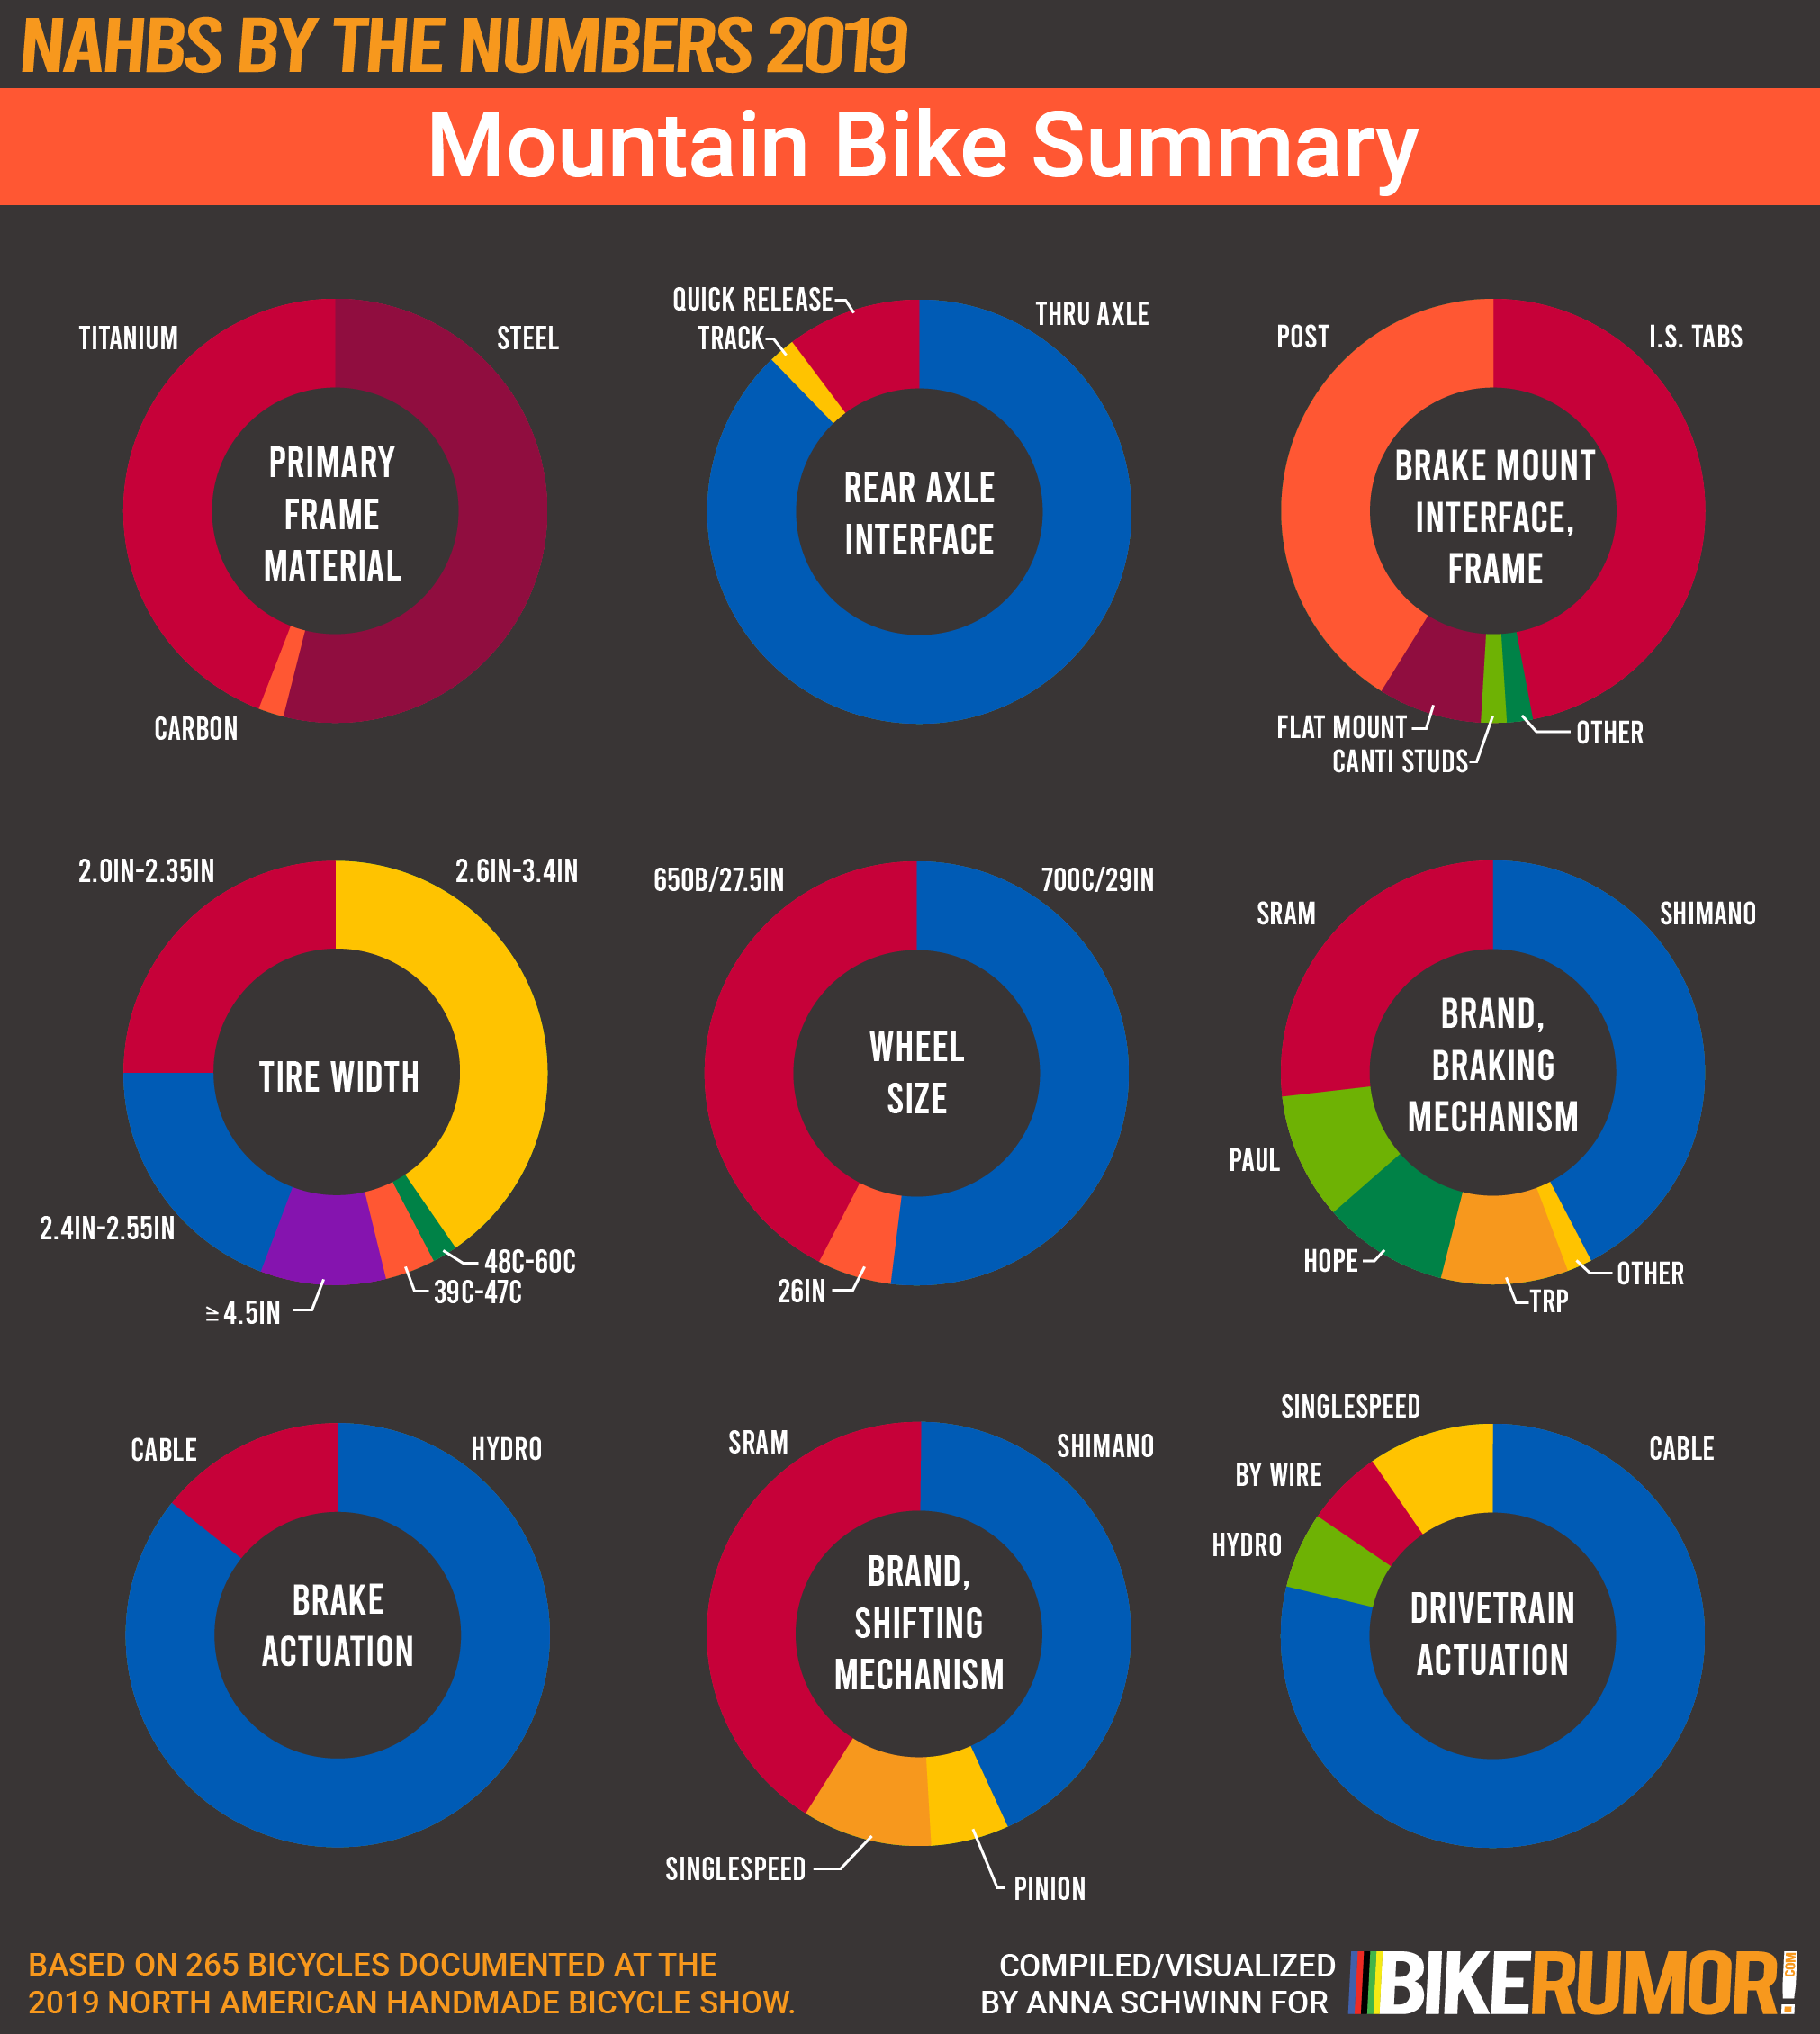 NAHBS by the Numbers 2019, Mountain Summary